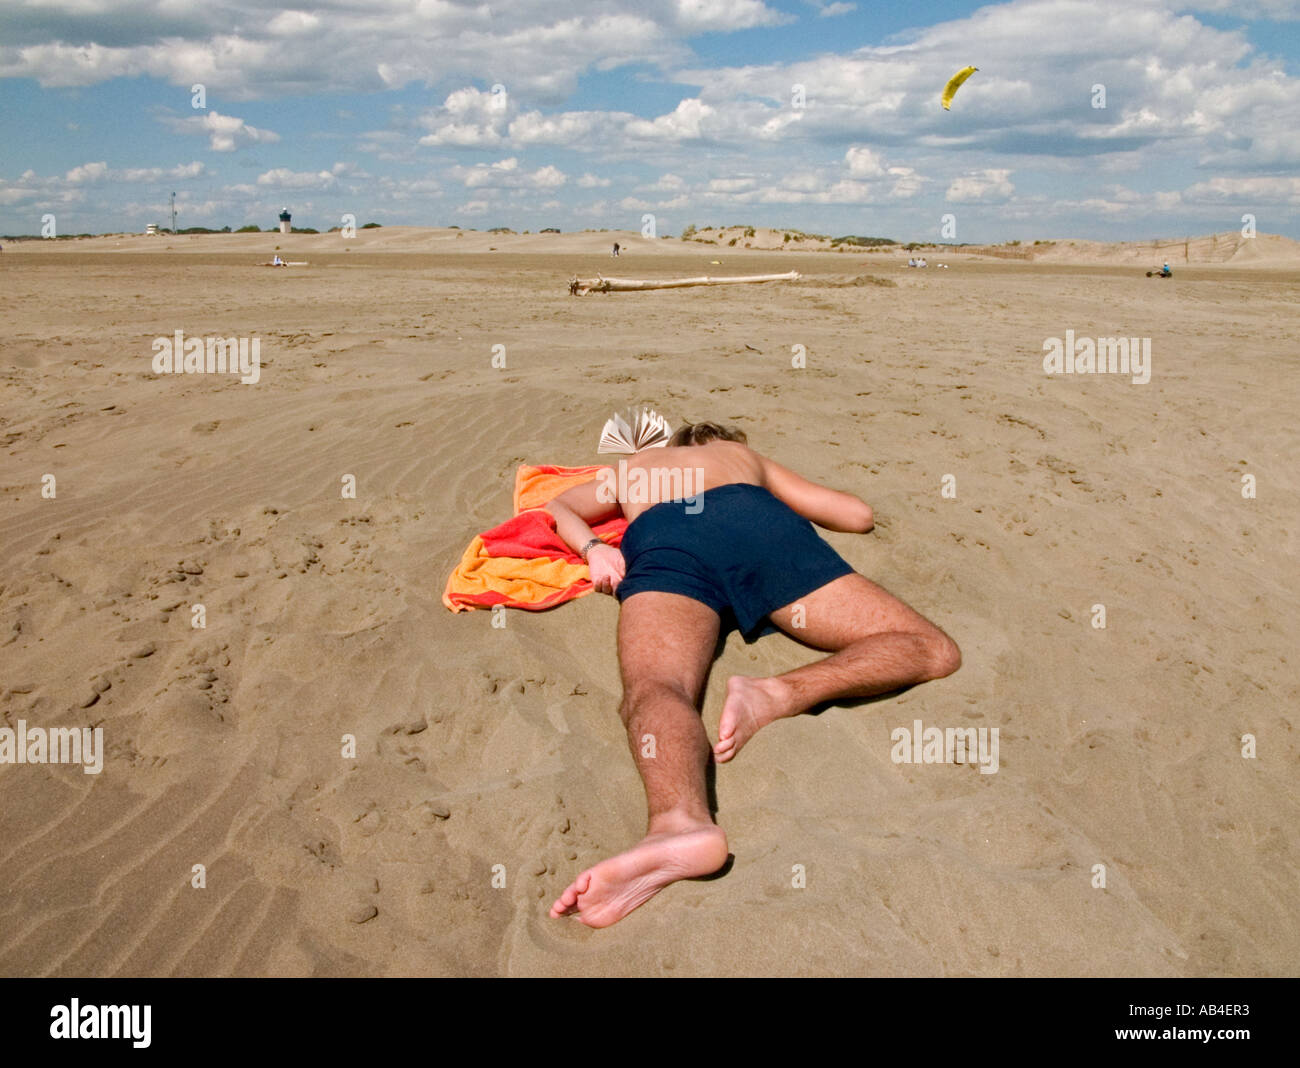 a young man lies on his front on beach towel with  open book - Stock Image